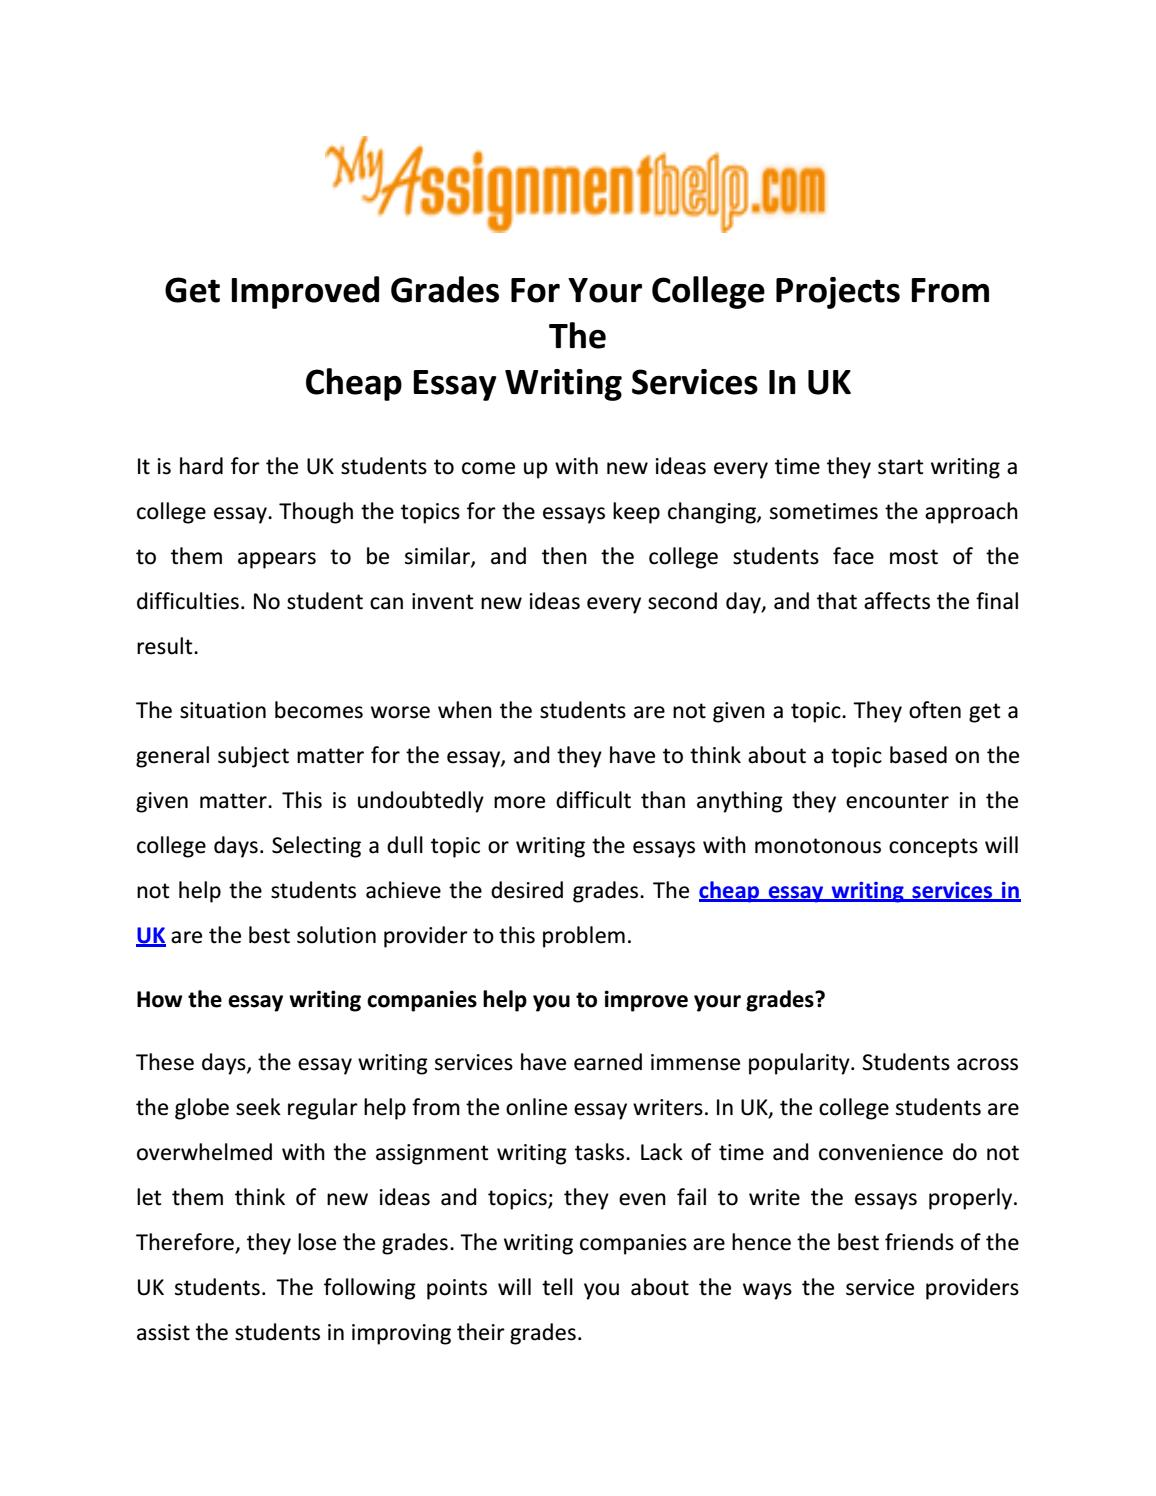 011 Page 1 Essay Example Cheap Writing Unusual Service Review Services Uk Australia Full